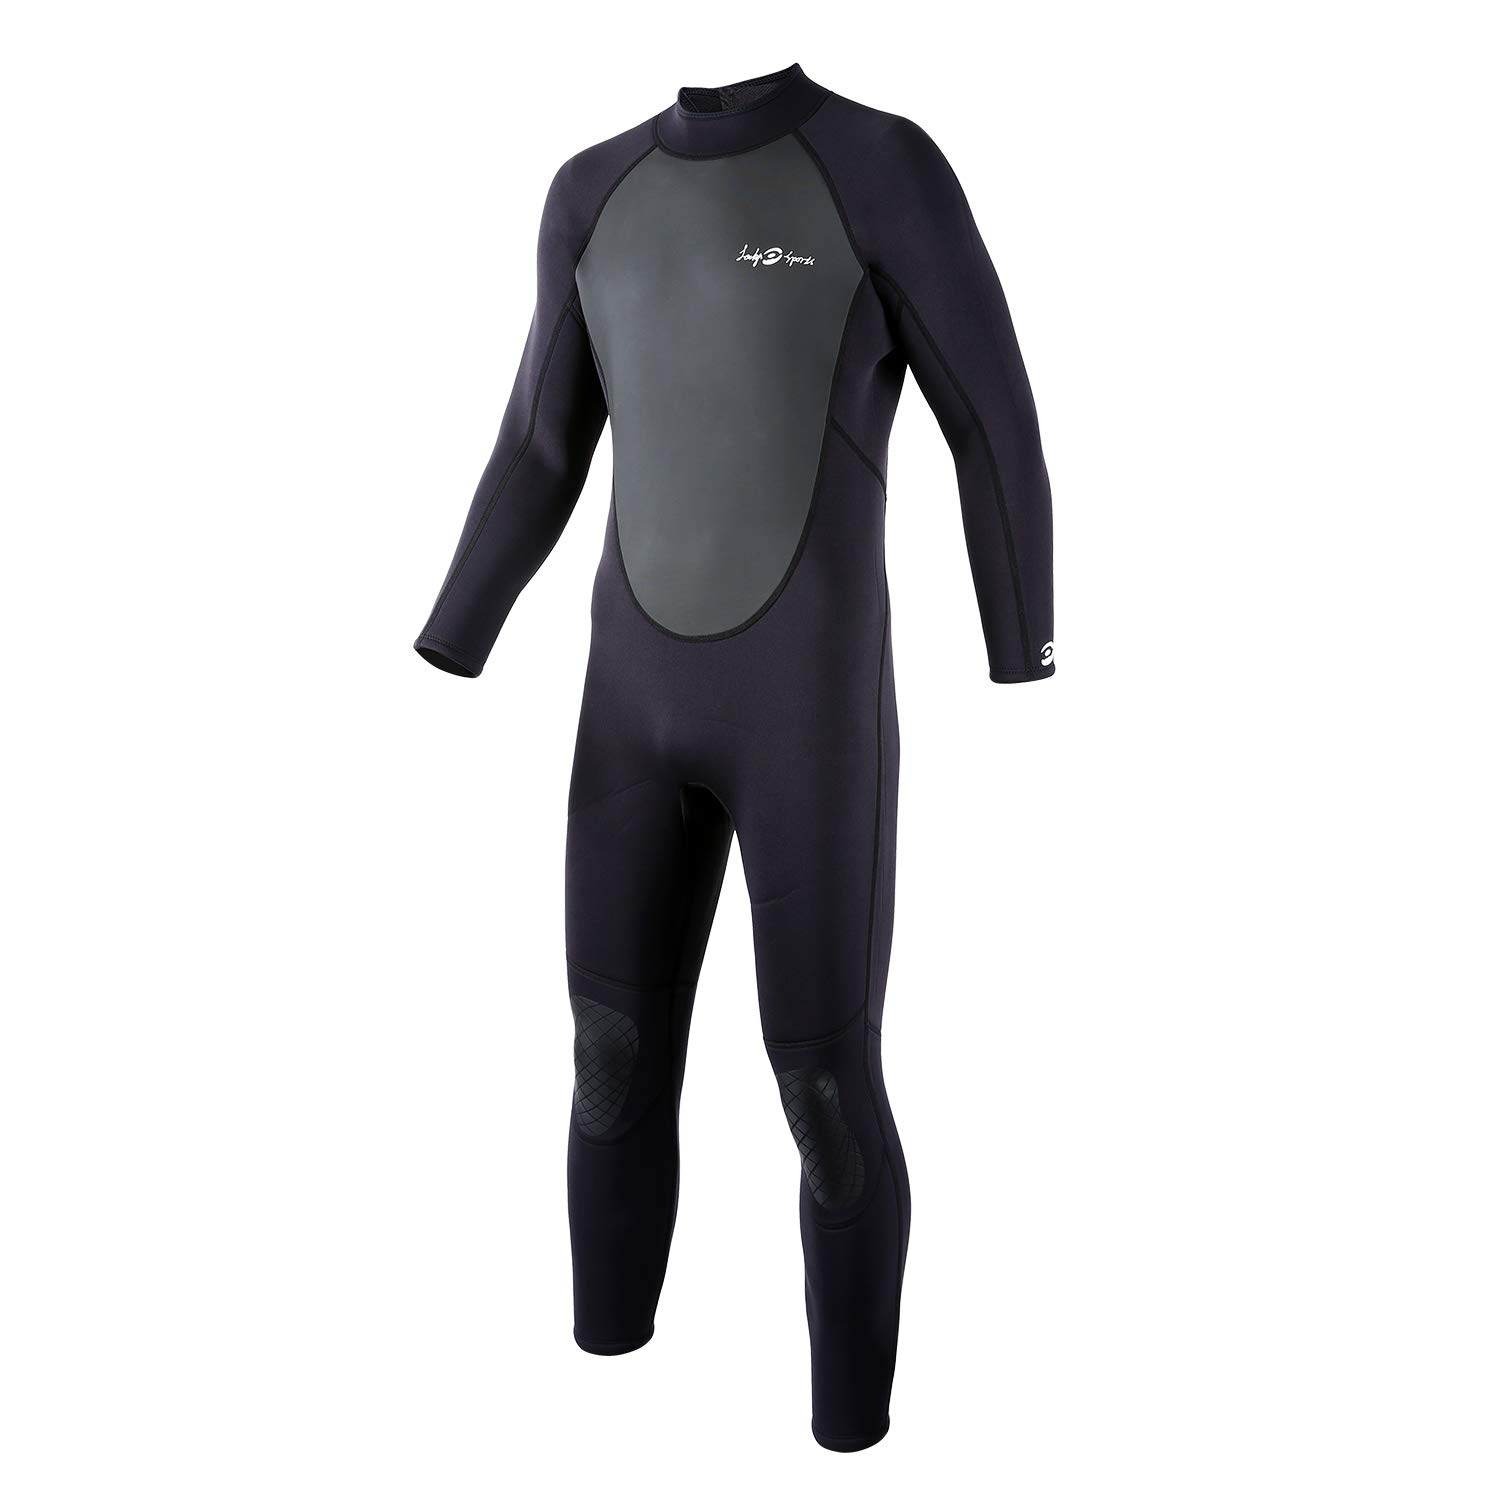 lockys sports Full Body Dive Wetsuit, 3mm Neoprene Wetsuit, Long Sleeve Swimwear with Adjustable Collar for Diving Surfing Snorkeling for Men (Small)